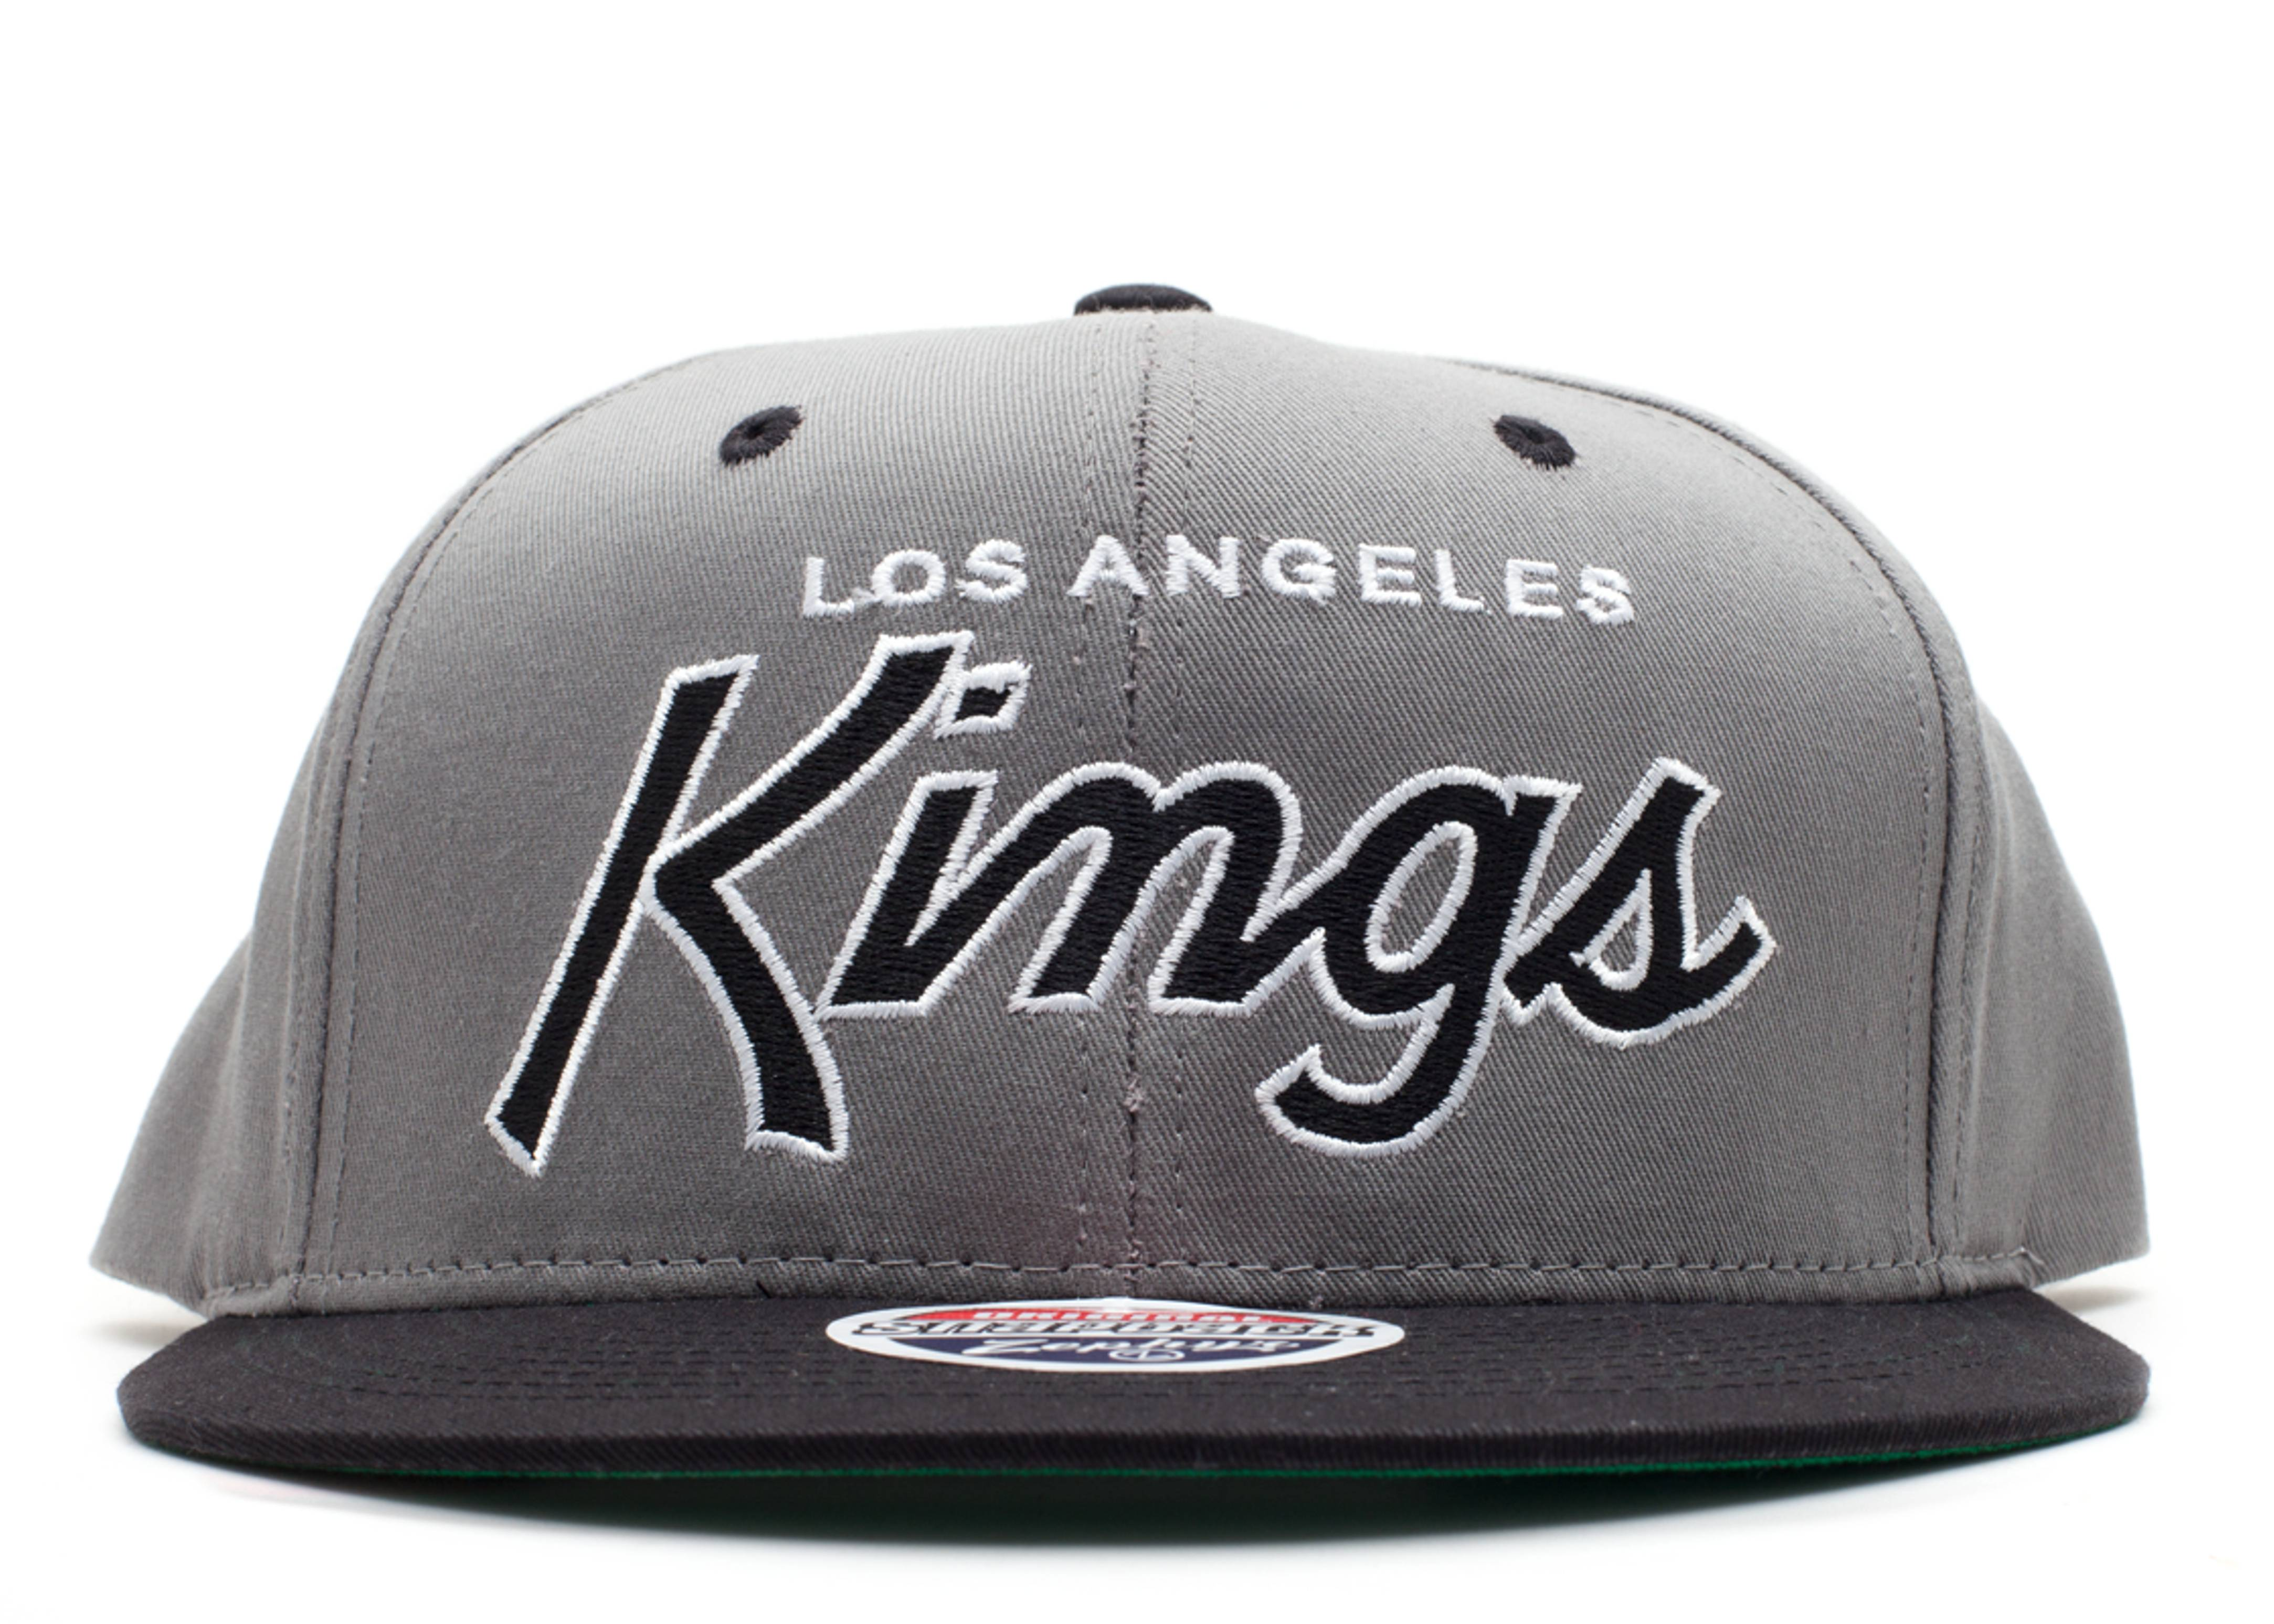 los angeles kings snap-back